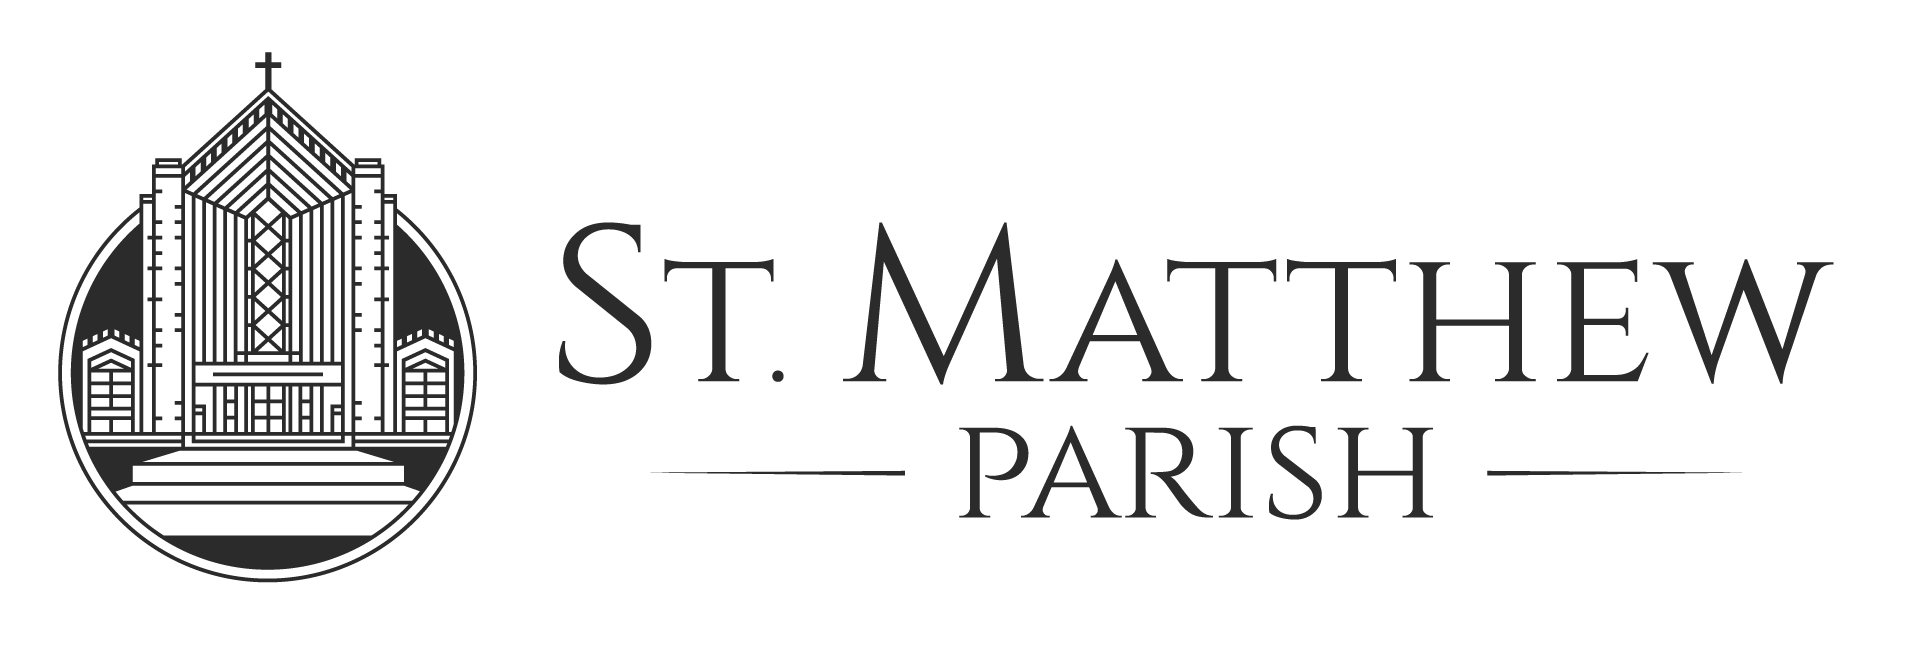 Saint Matthew Parish